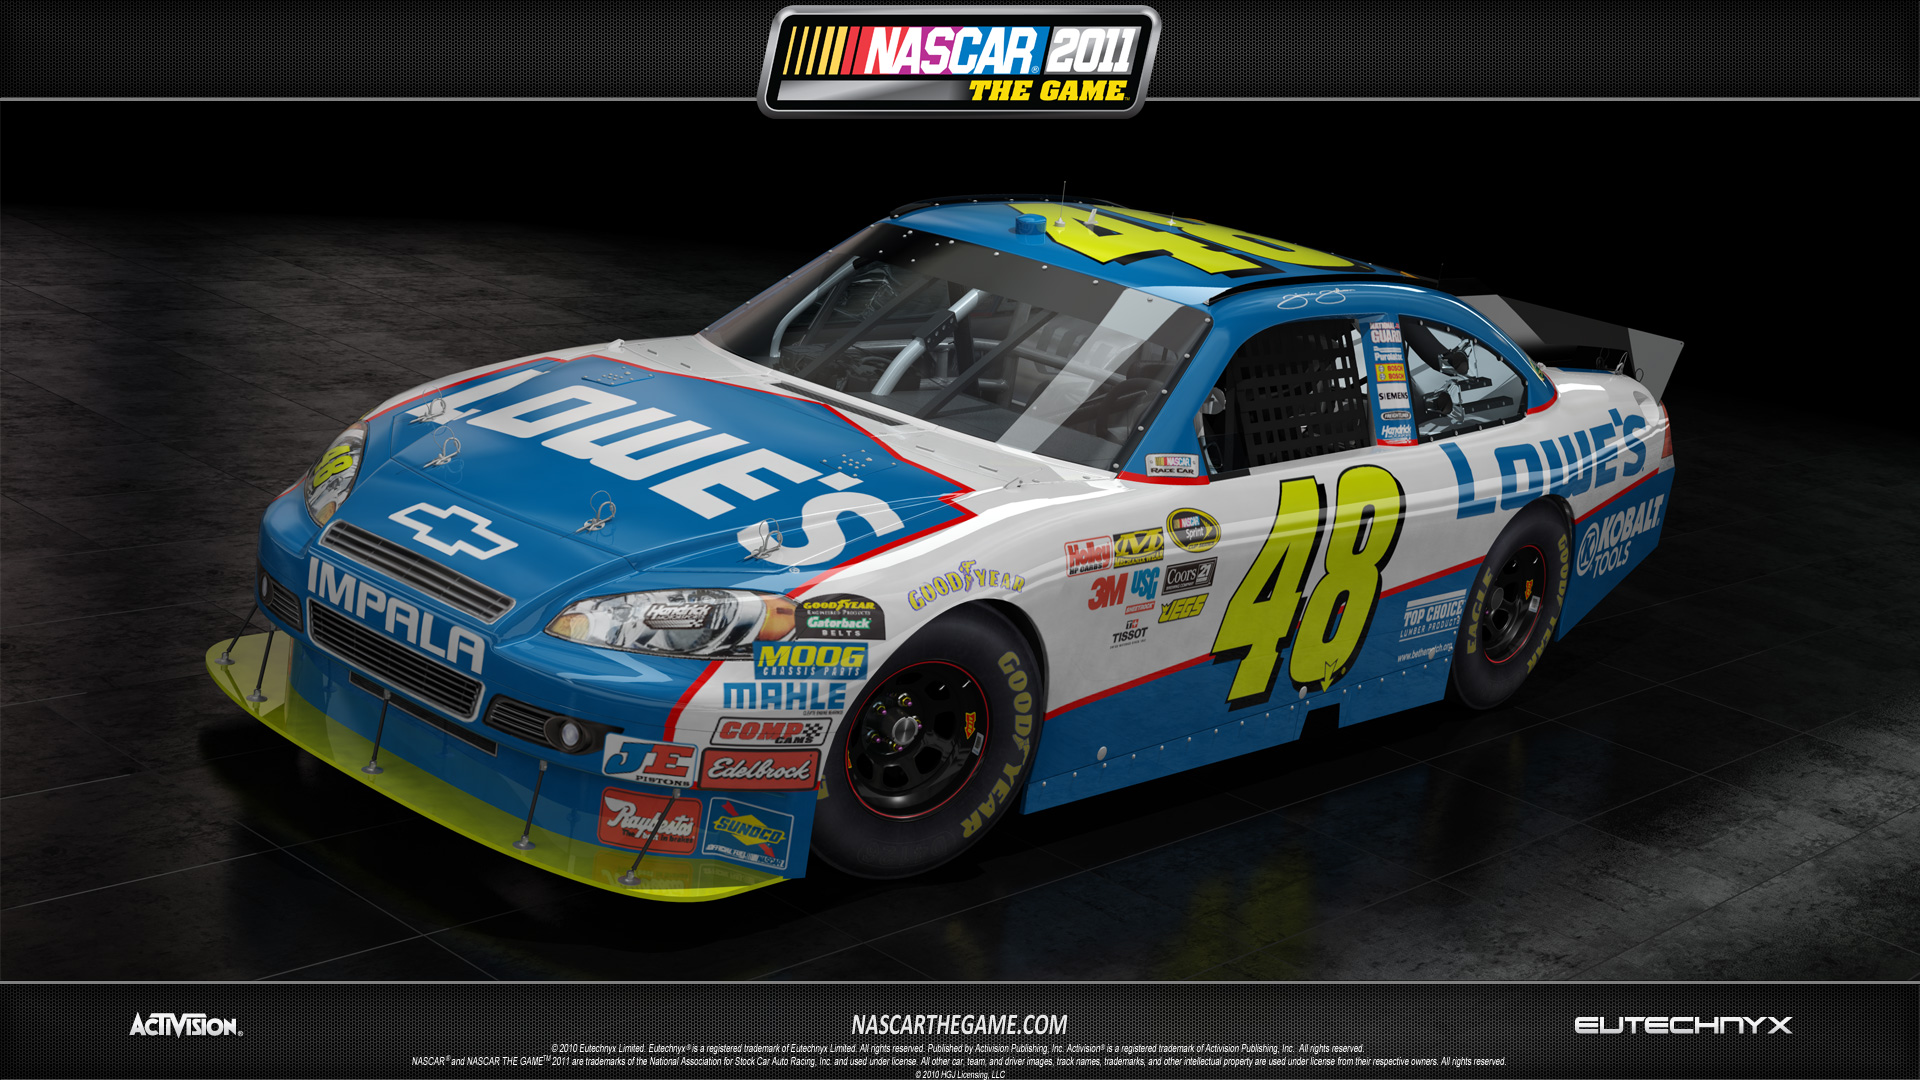 Jimmie Johnson   NASCAR 2011 wallpaper   ForWallpapercom 1920x1080